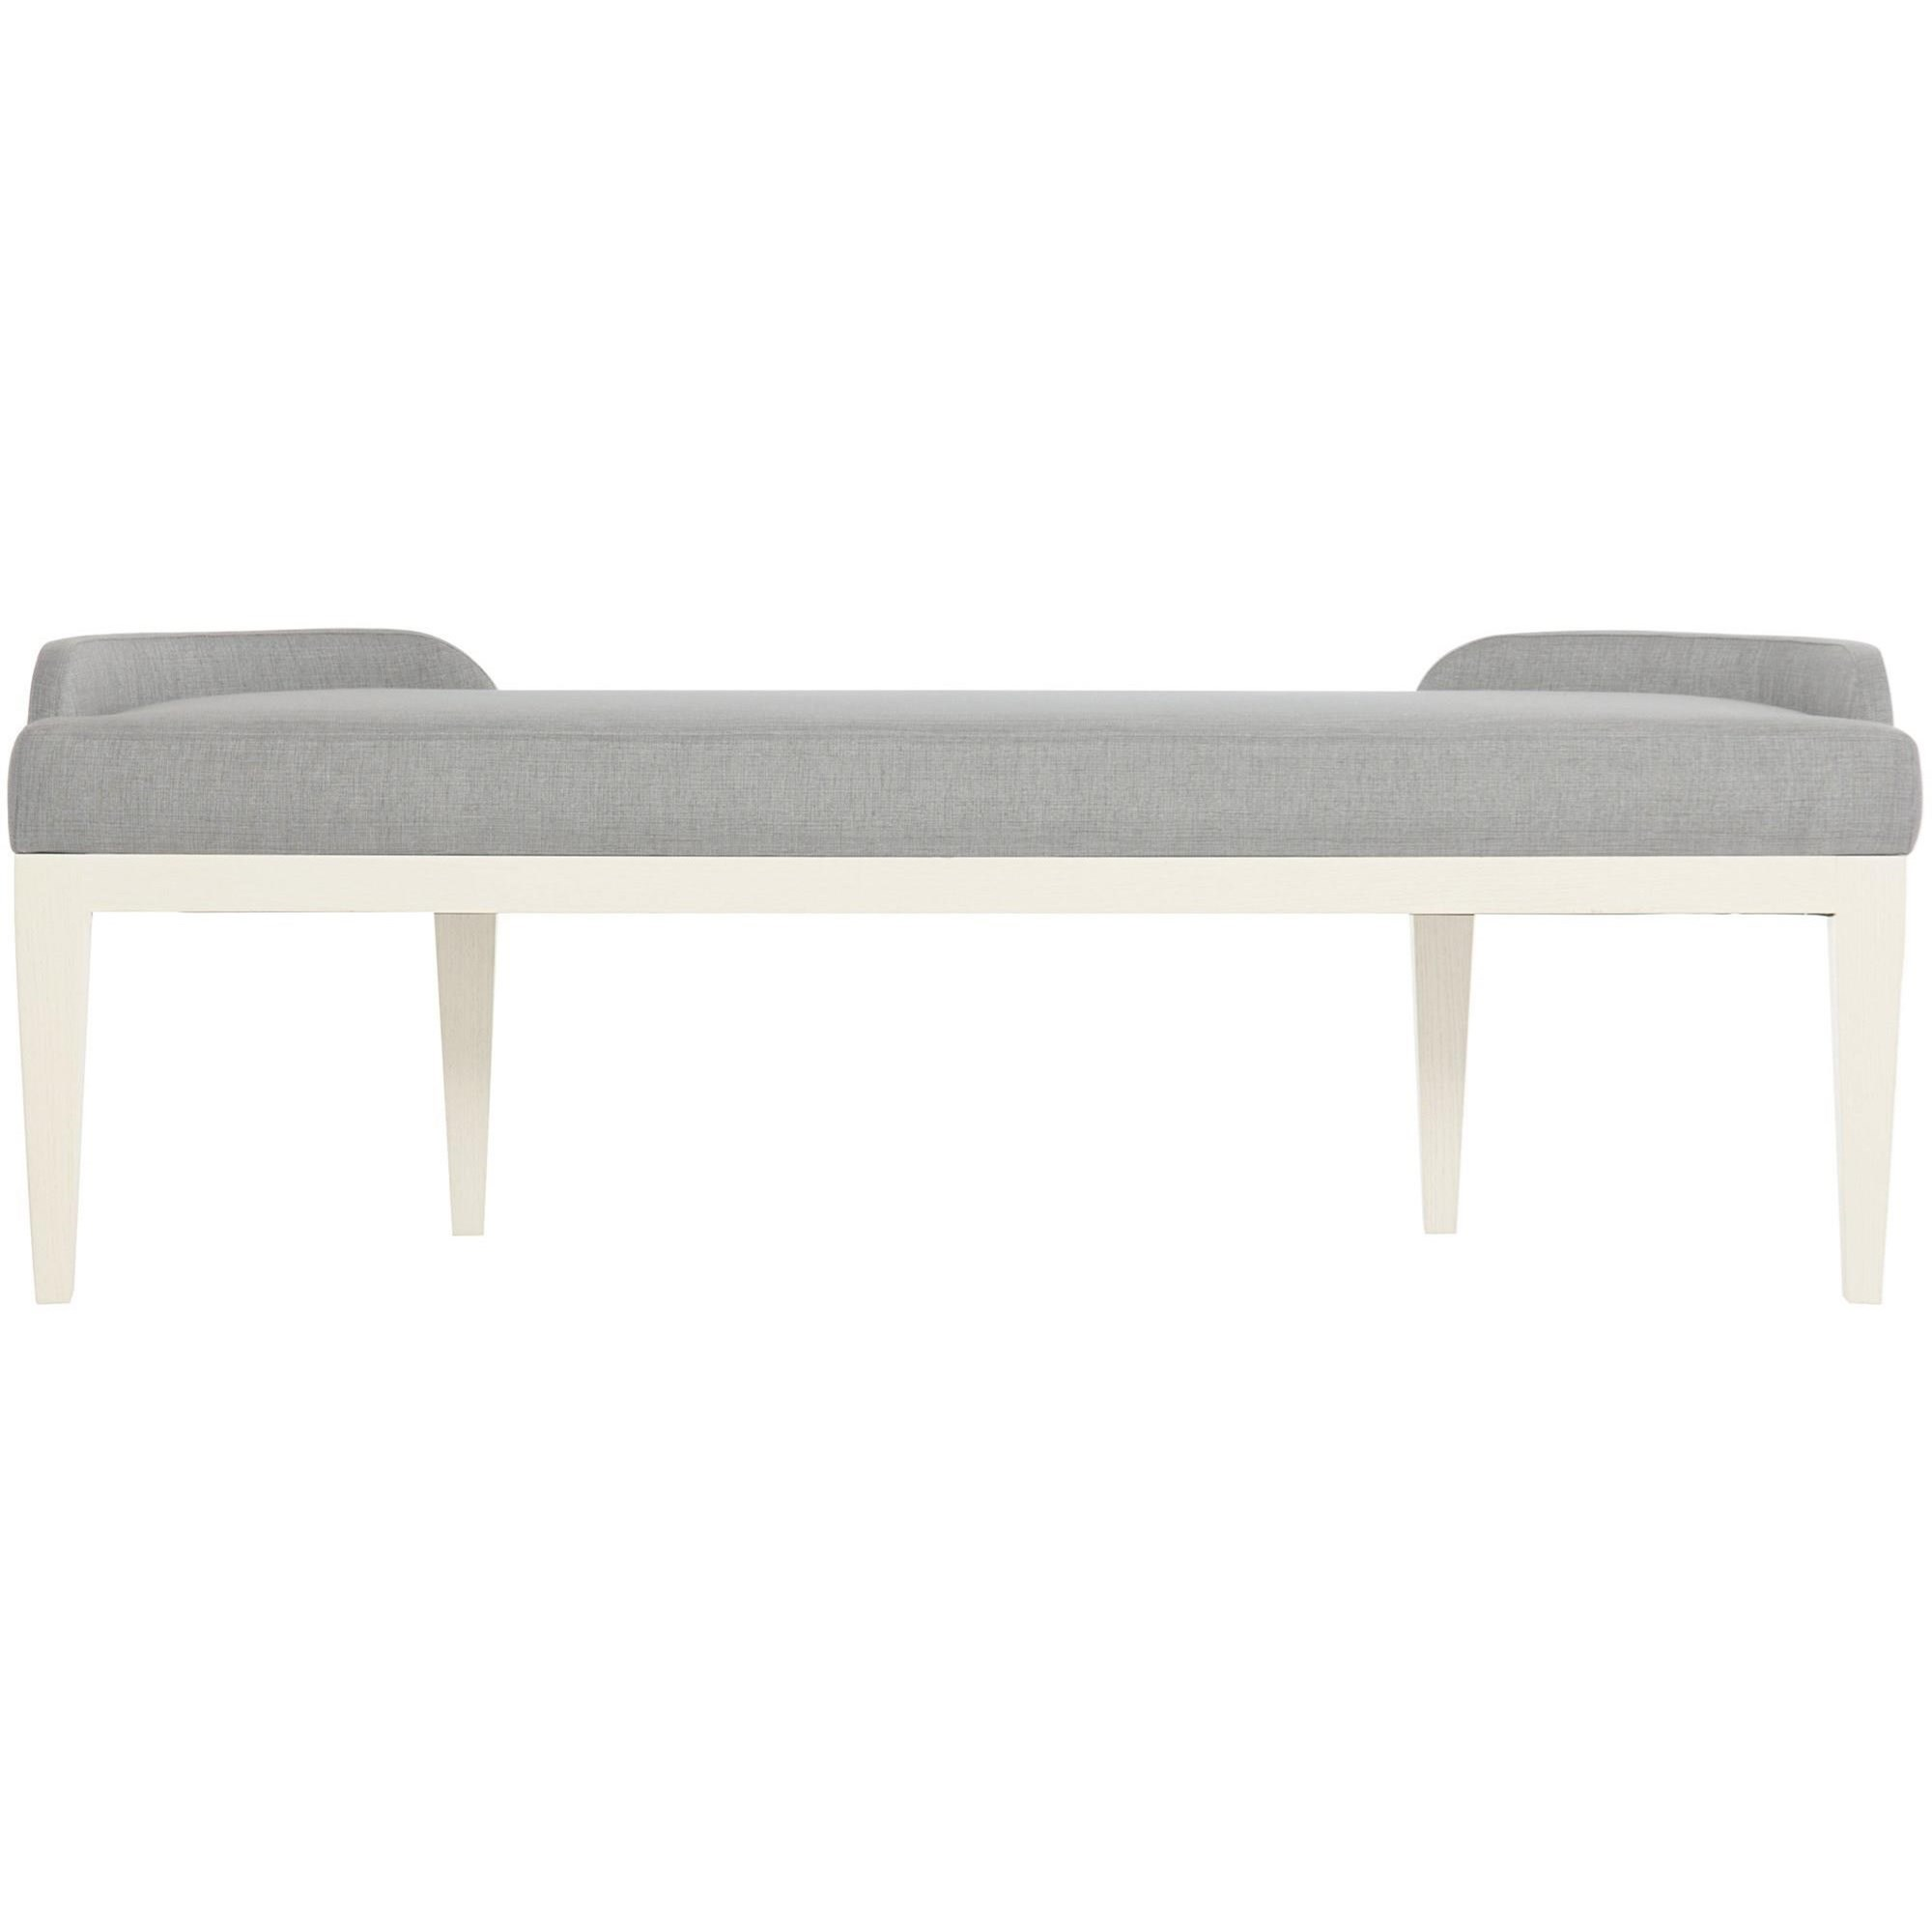 Calista Customizable Bench by Bernhardt at Baer's Furniture